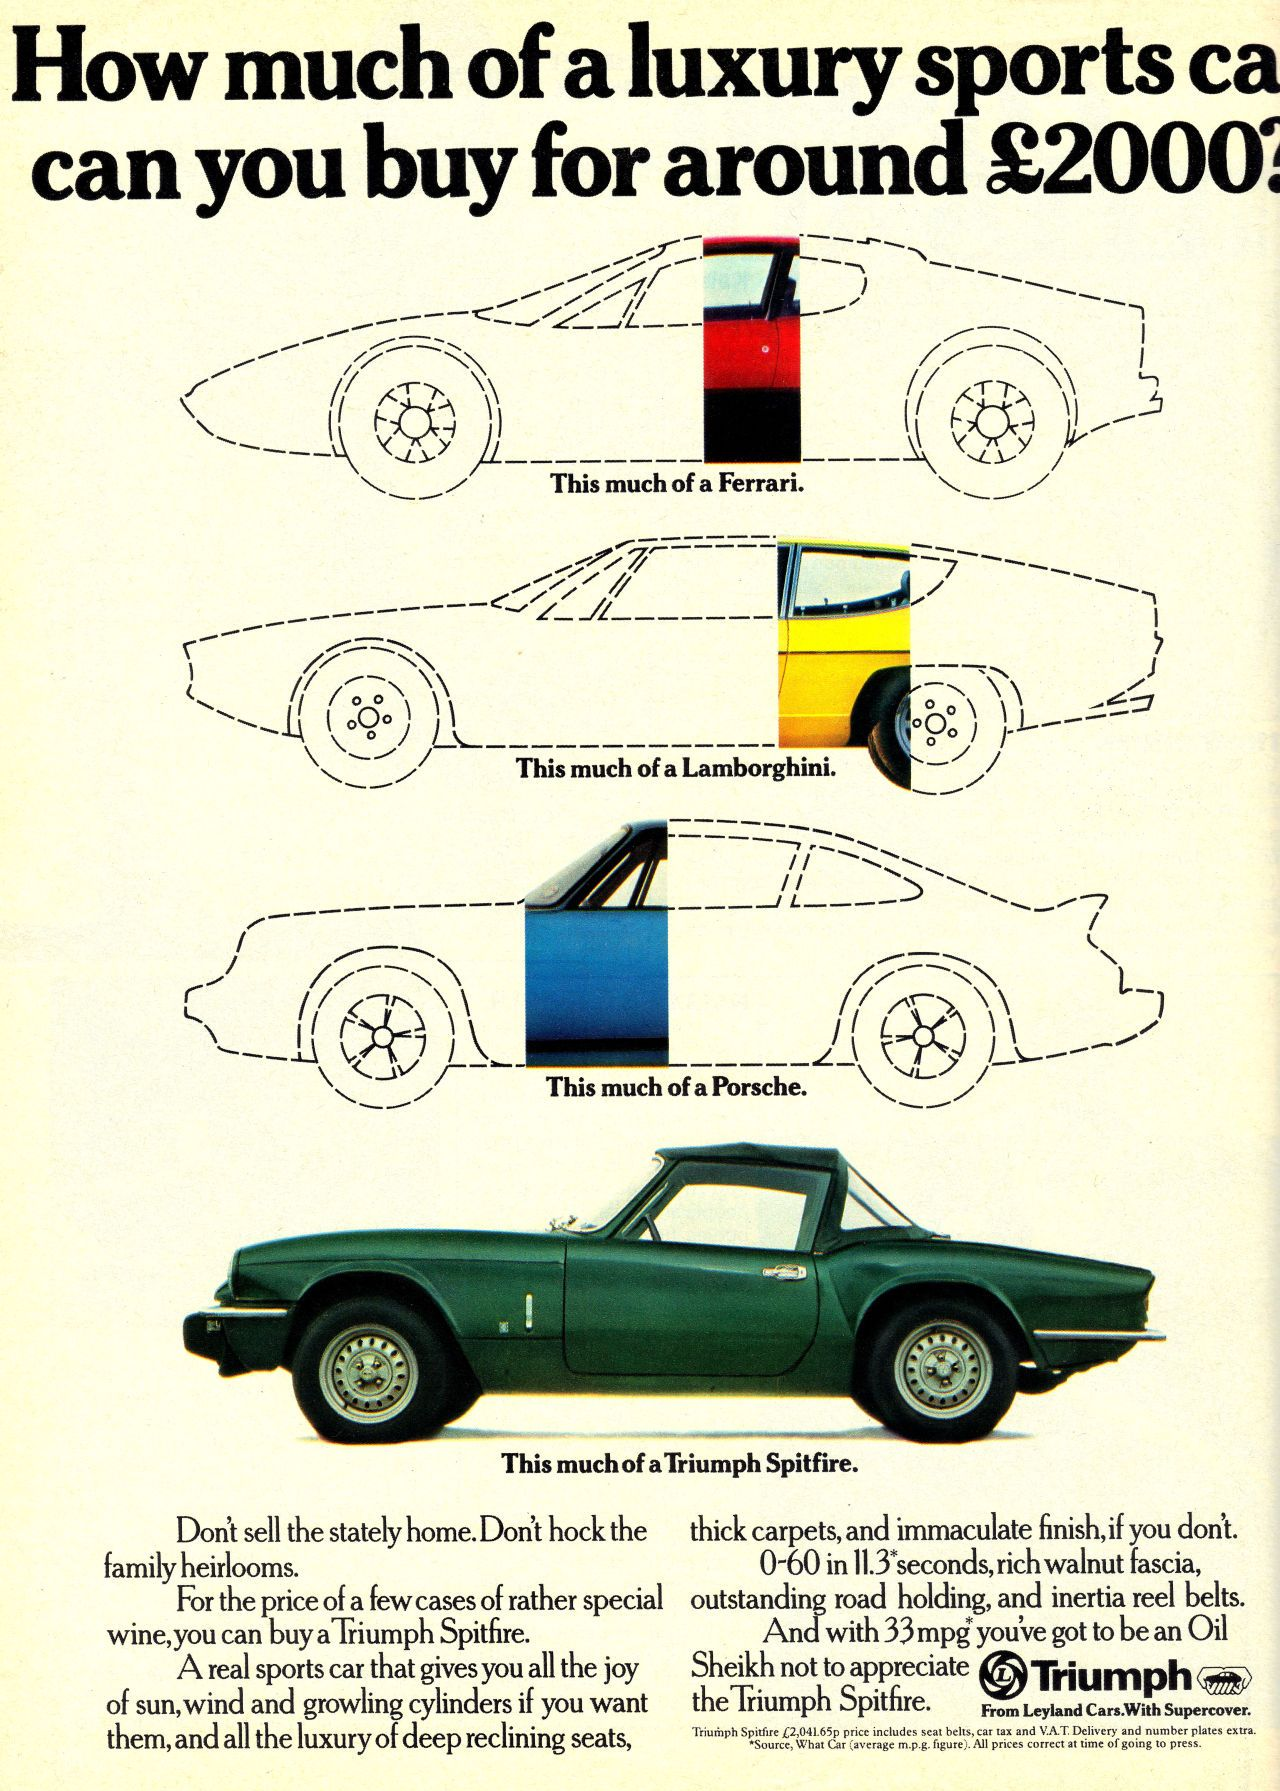 A Brief History of the Triumph Spitfire - Everything You